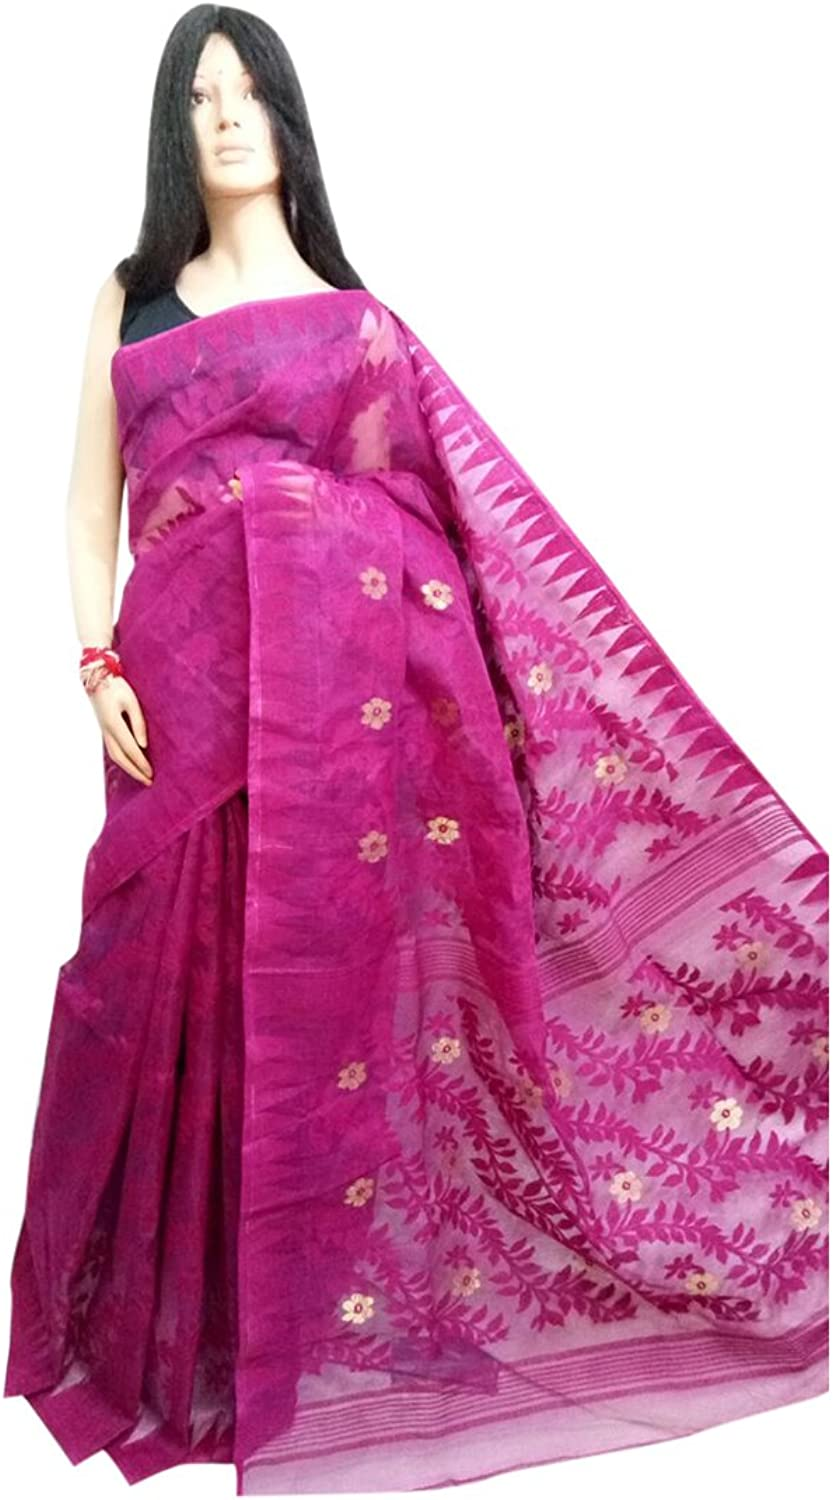 Ethnic purple Handloom Dhakai Jamdani Sari Full weaving work Bengal Women sari Indian Festive saree 105 5